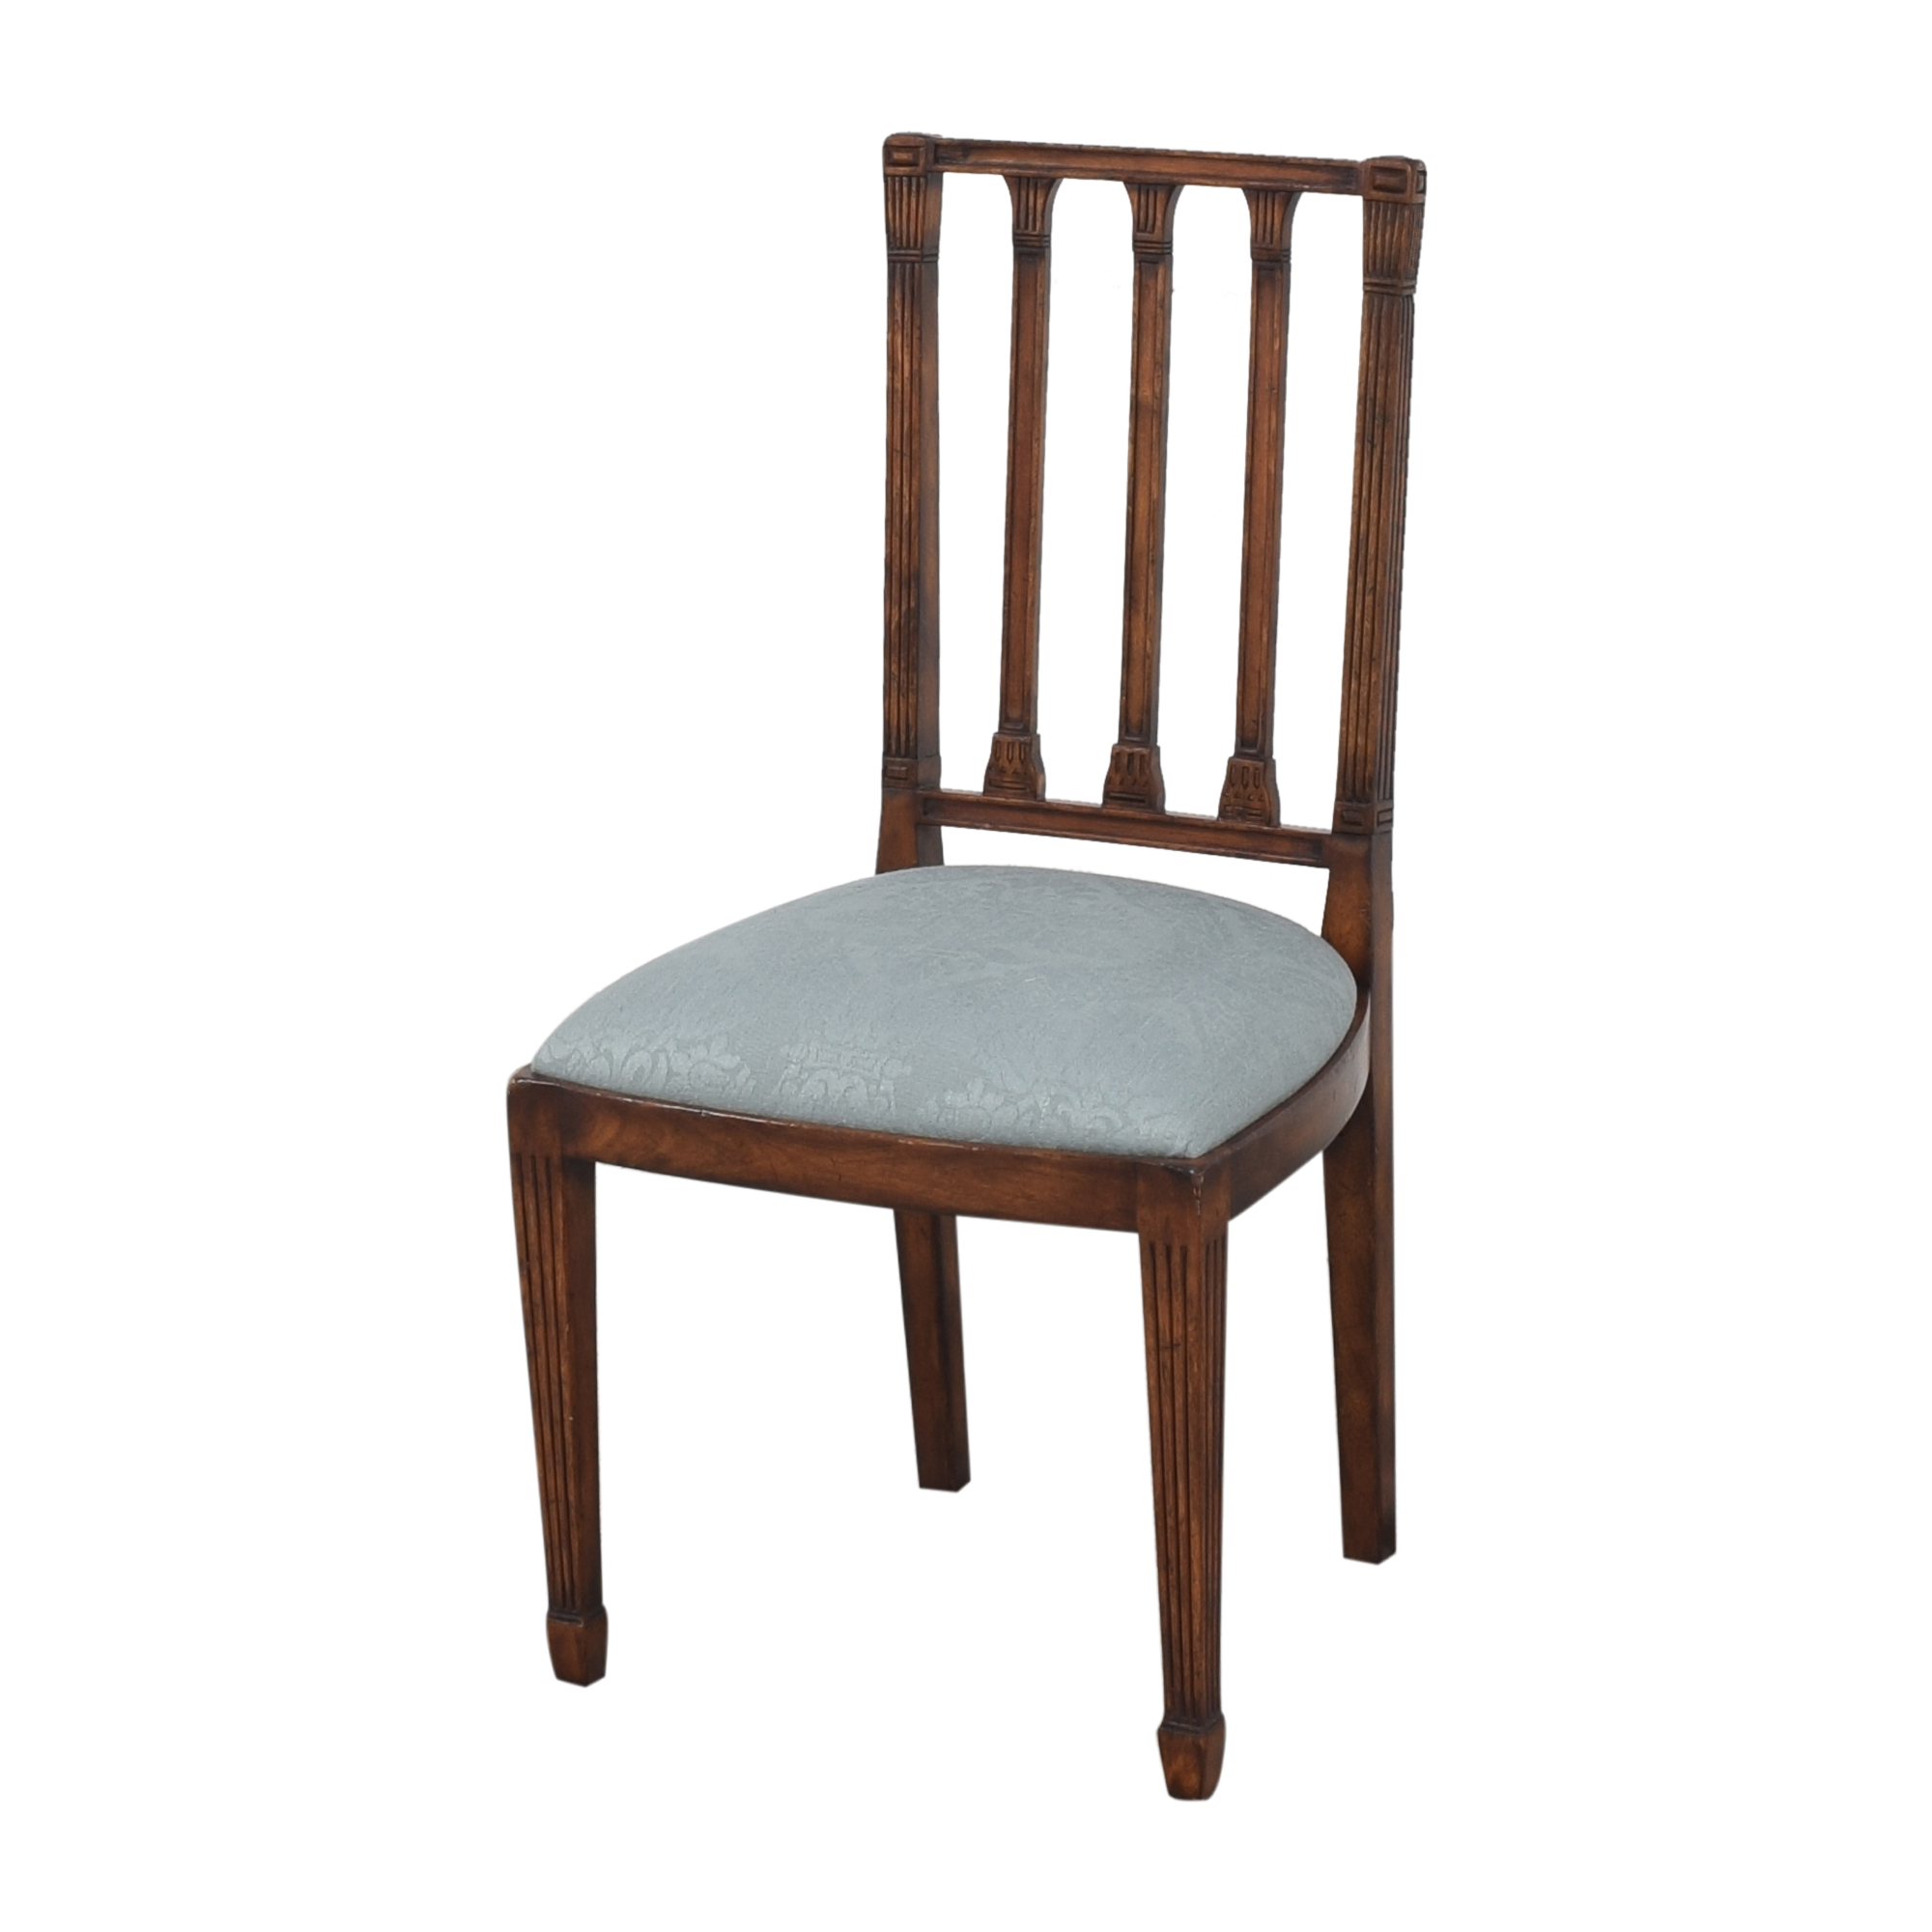 English Country Home English Country Home Upholstered Dining Chairs nyc